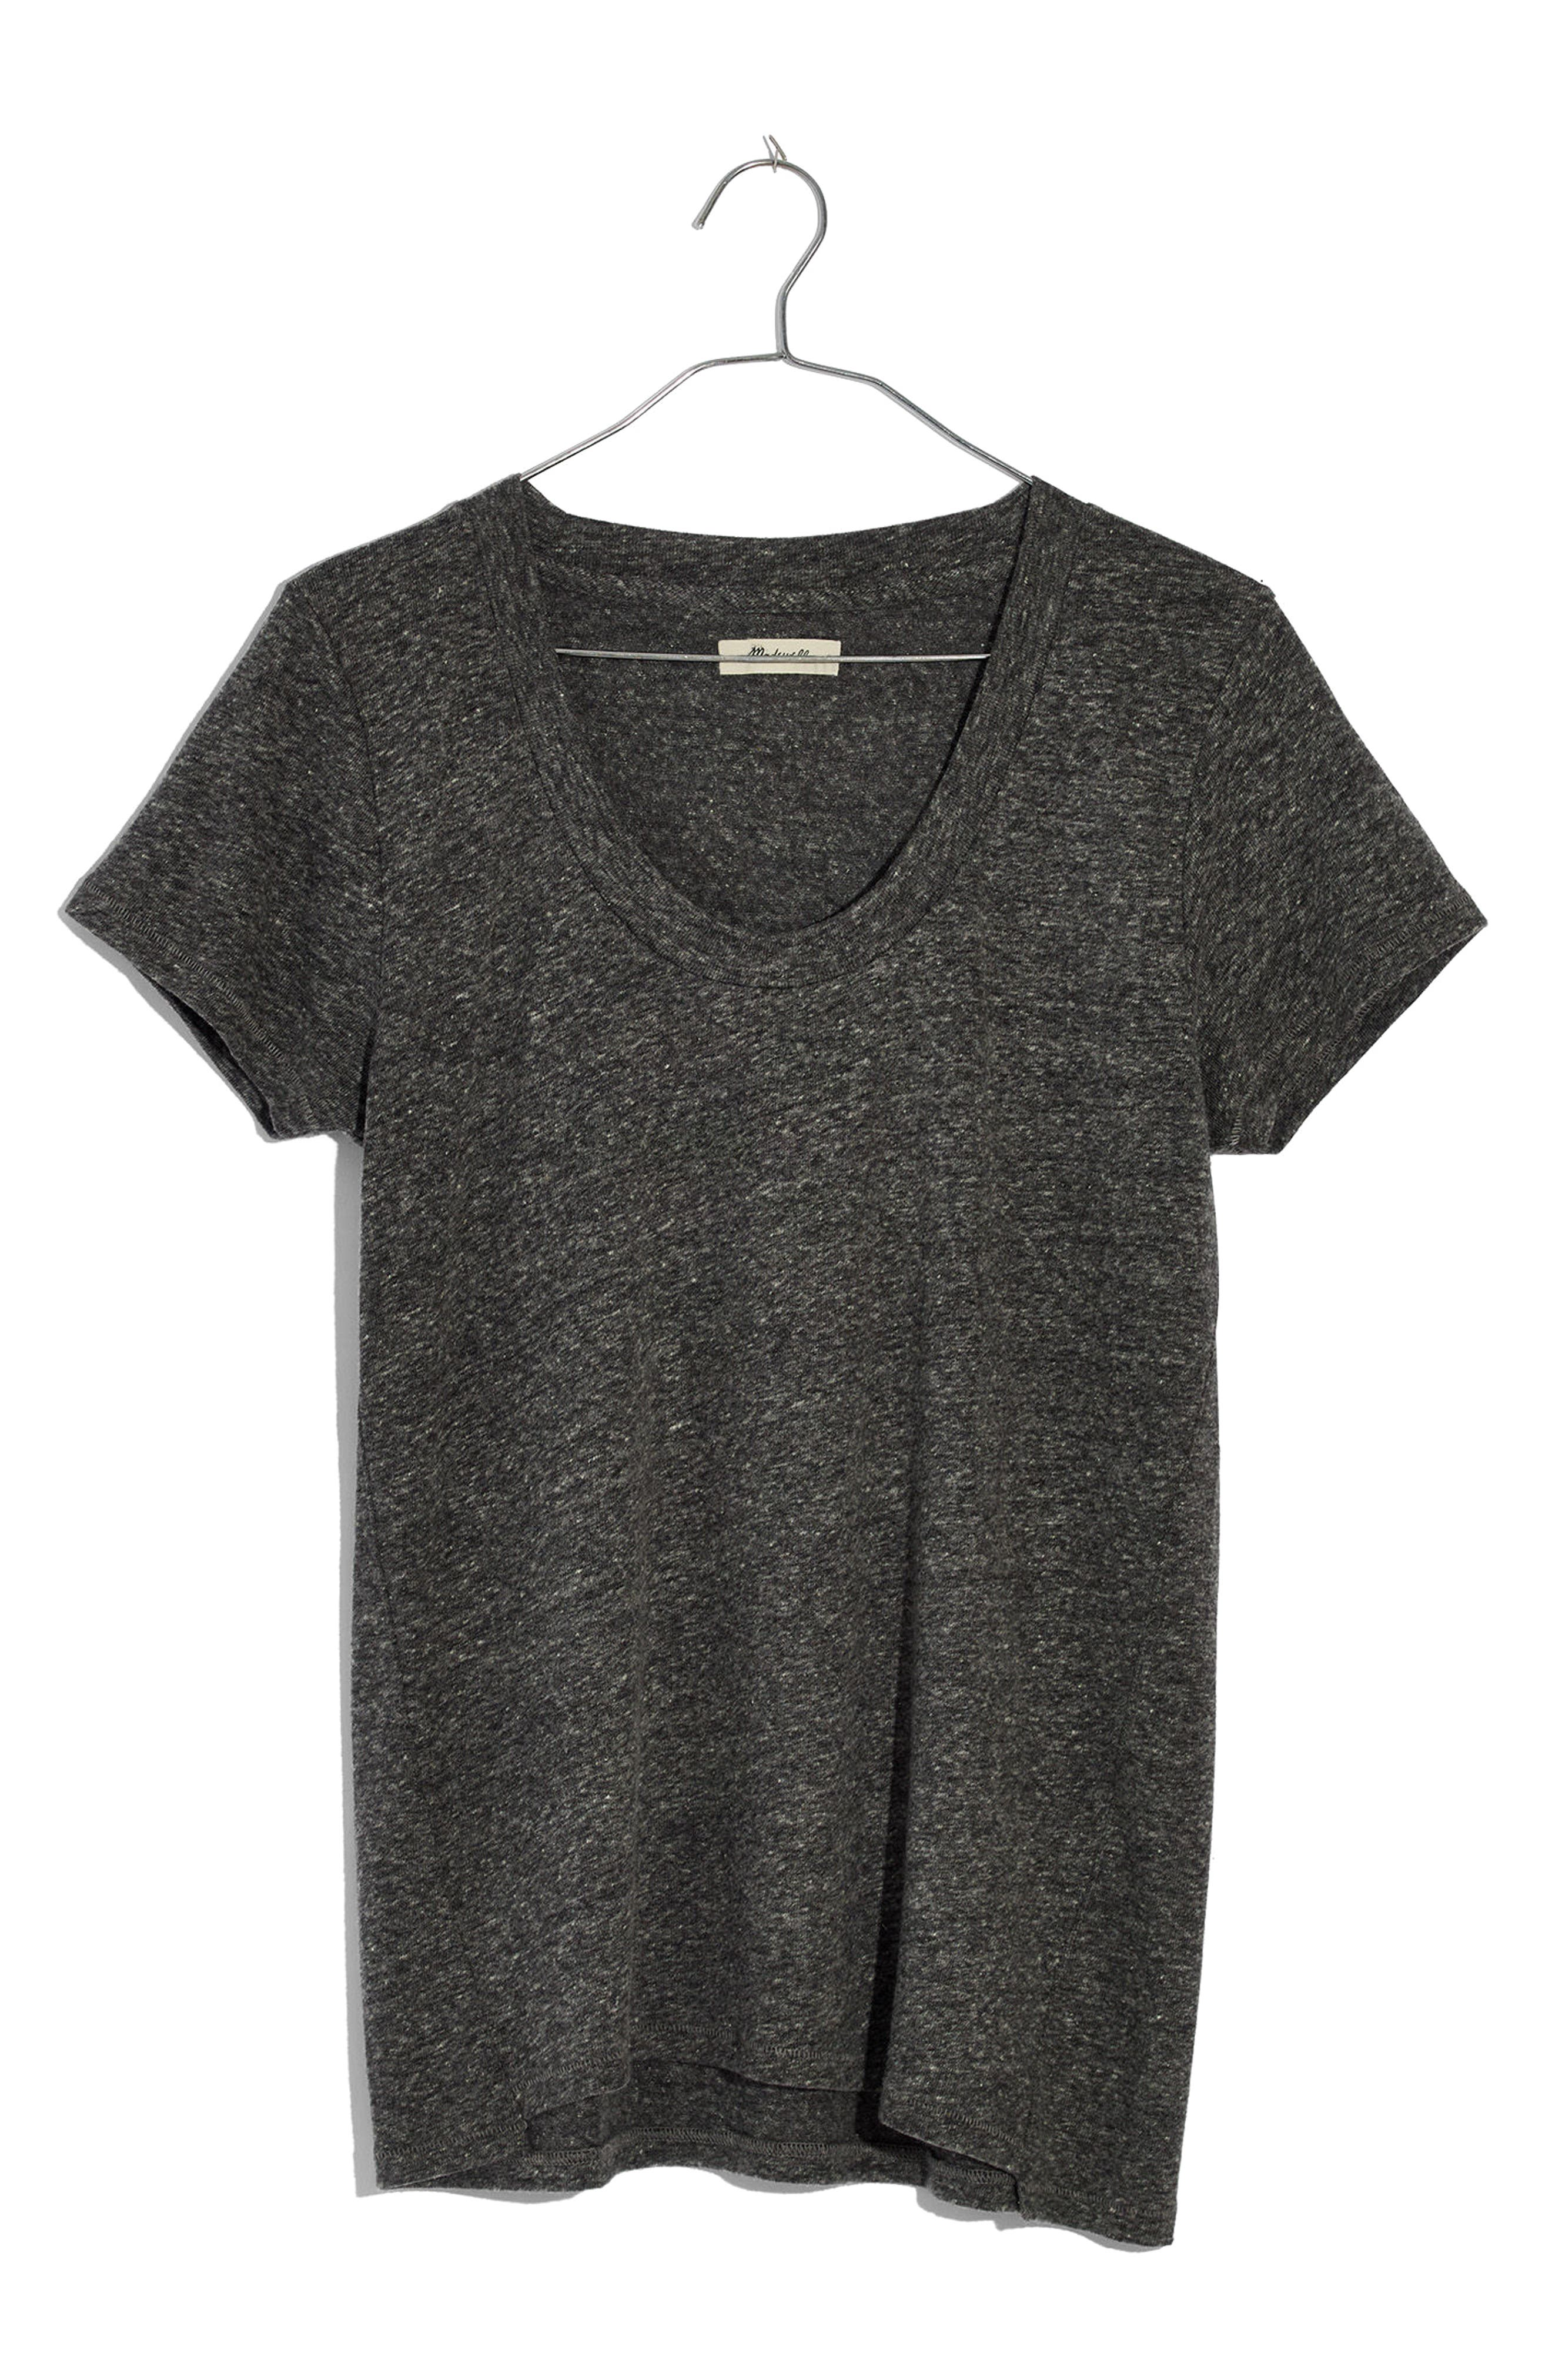 City Tee,                         Main,                         color,